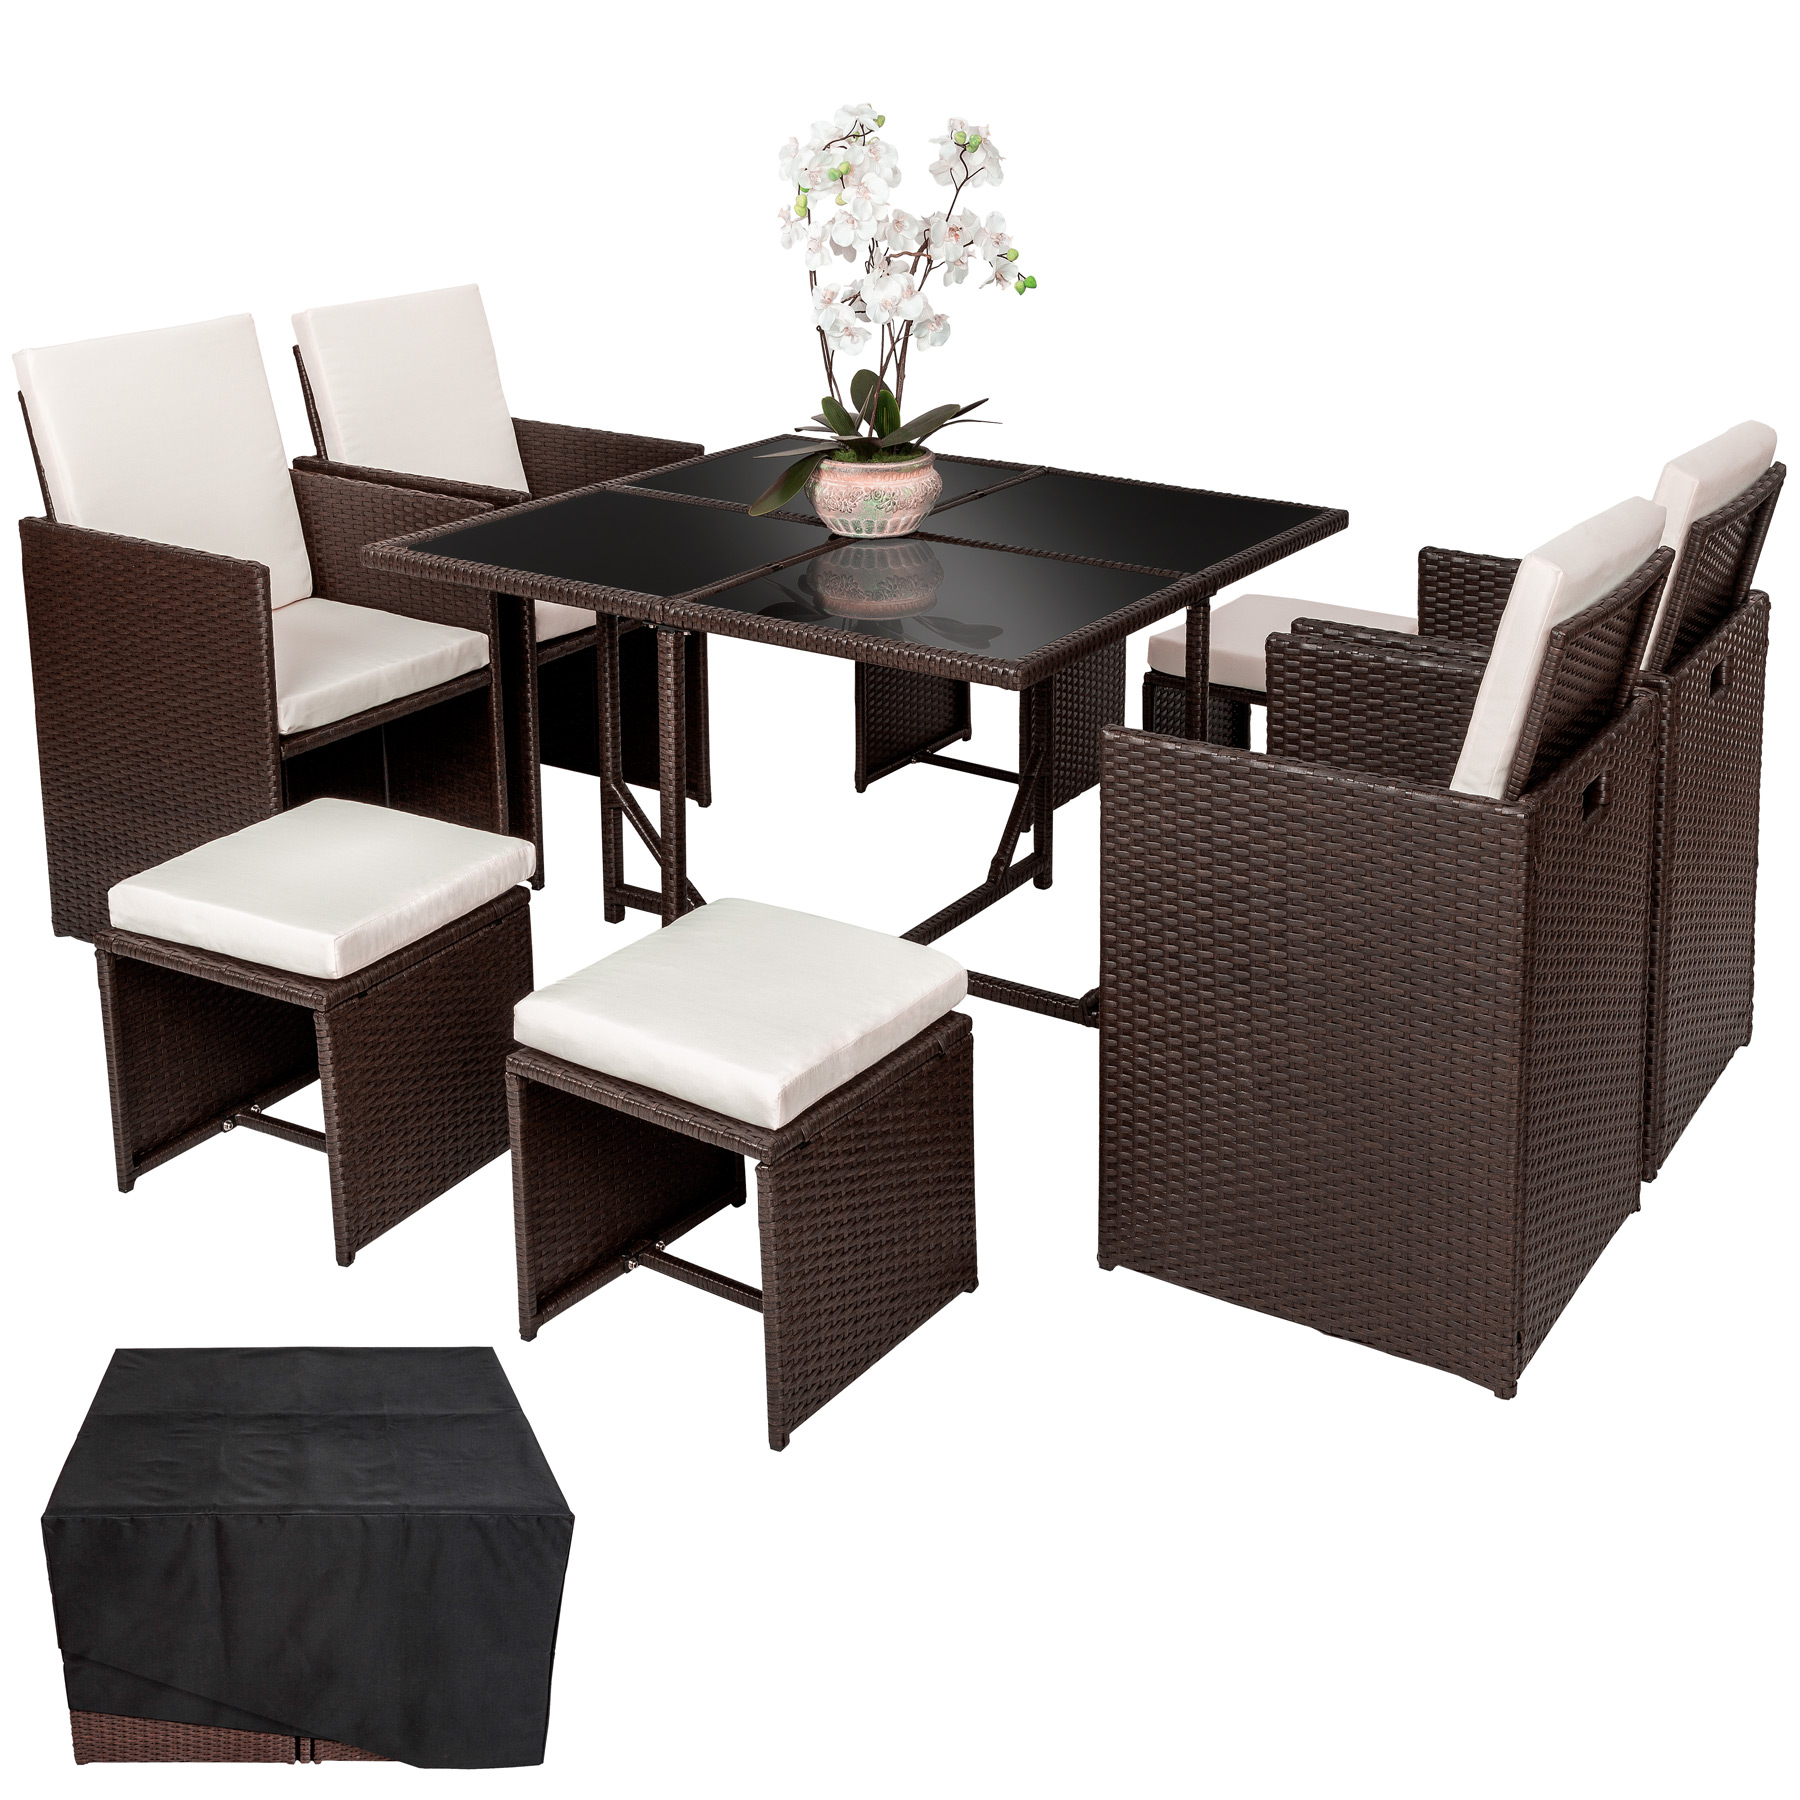 rattan garden furniture set cube dining wicker 8 seater table cushions